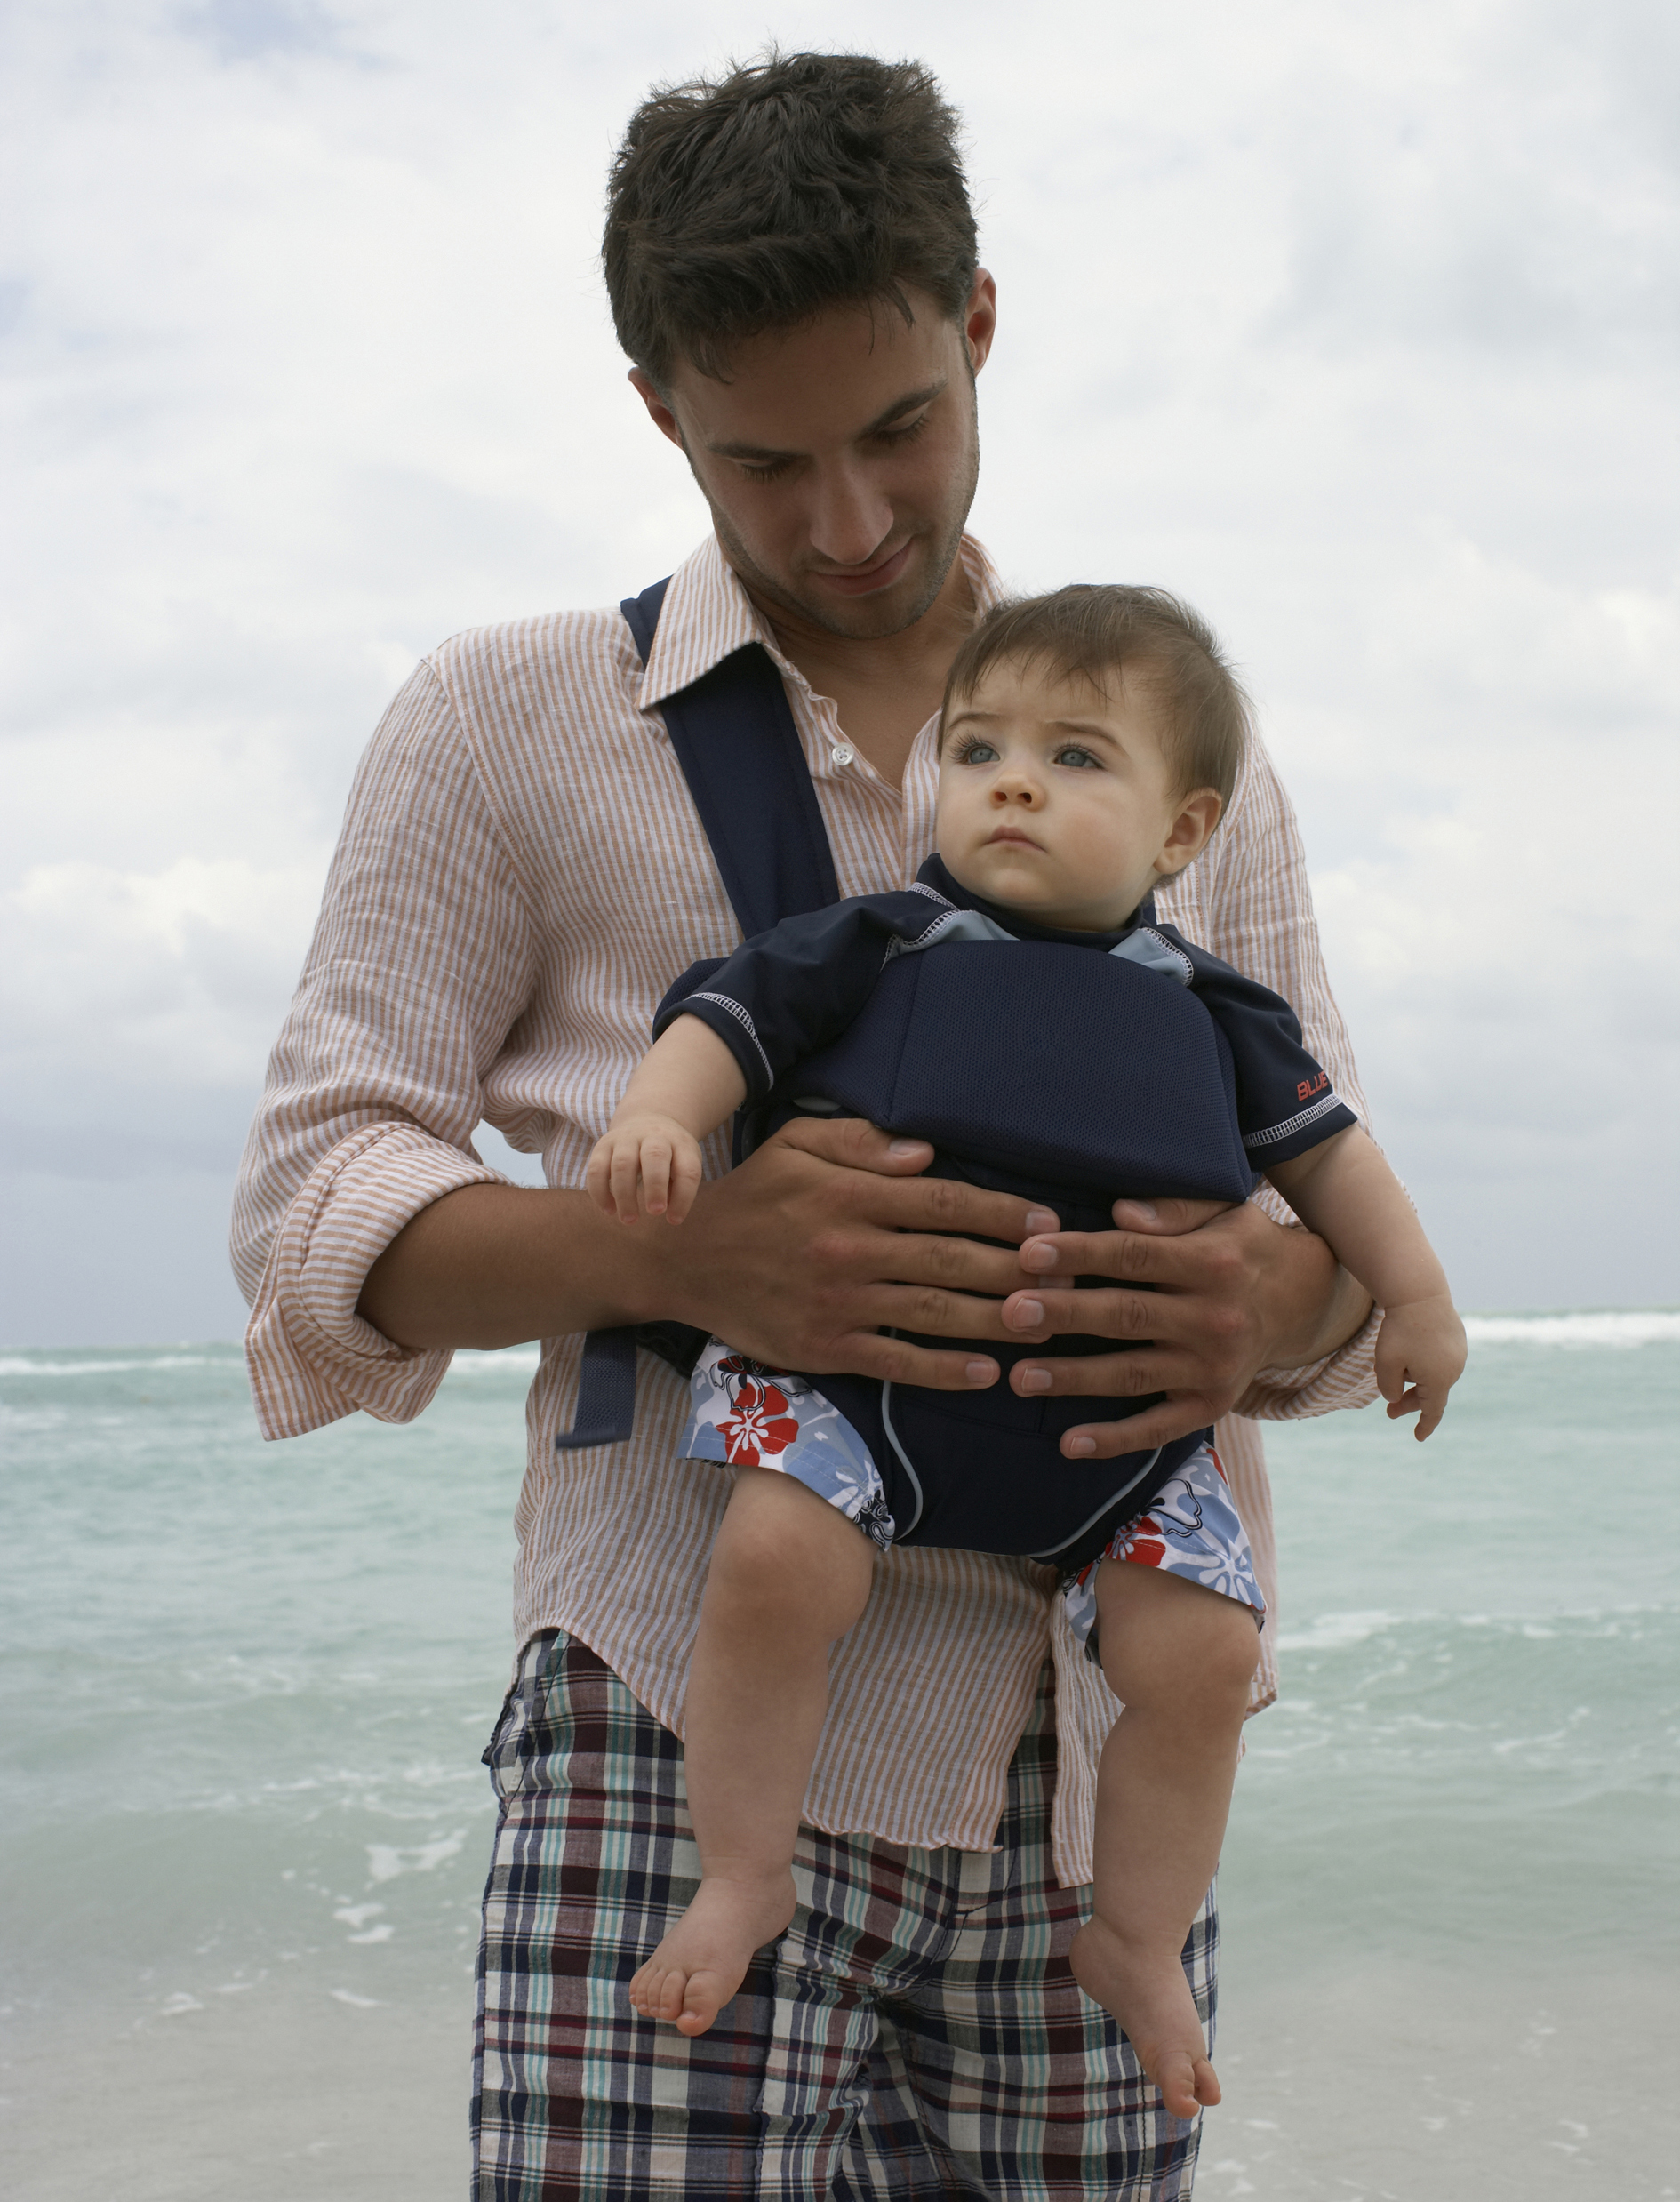 A man carrying his baby in a sling (Thinkstock/PA)